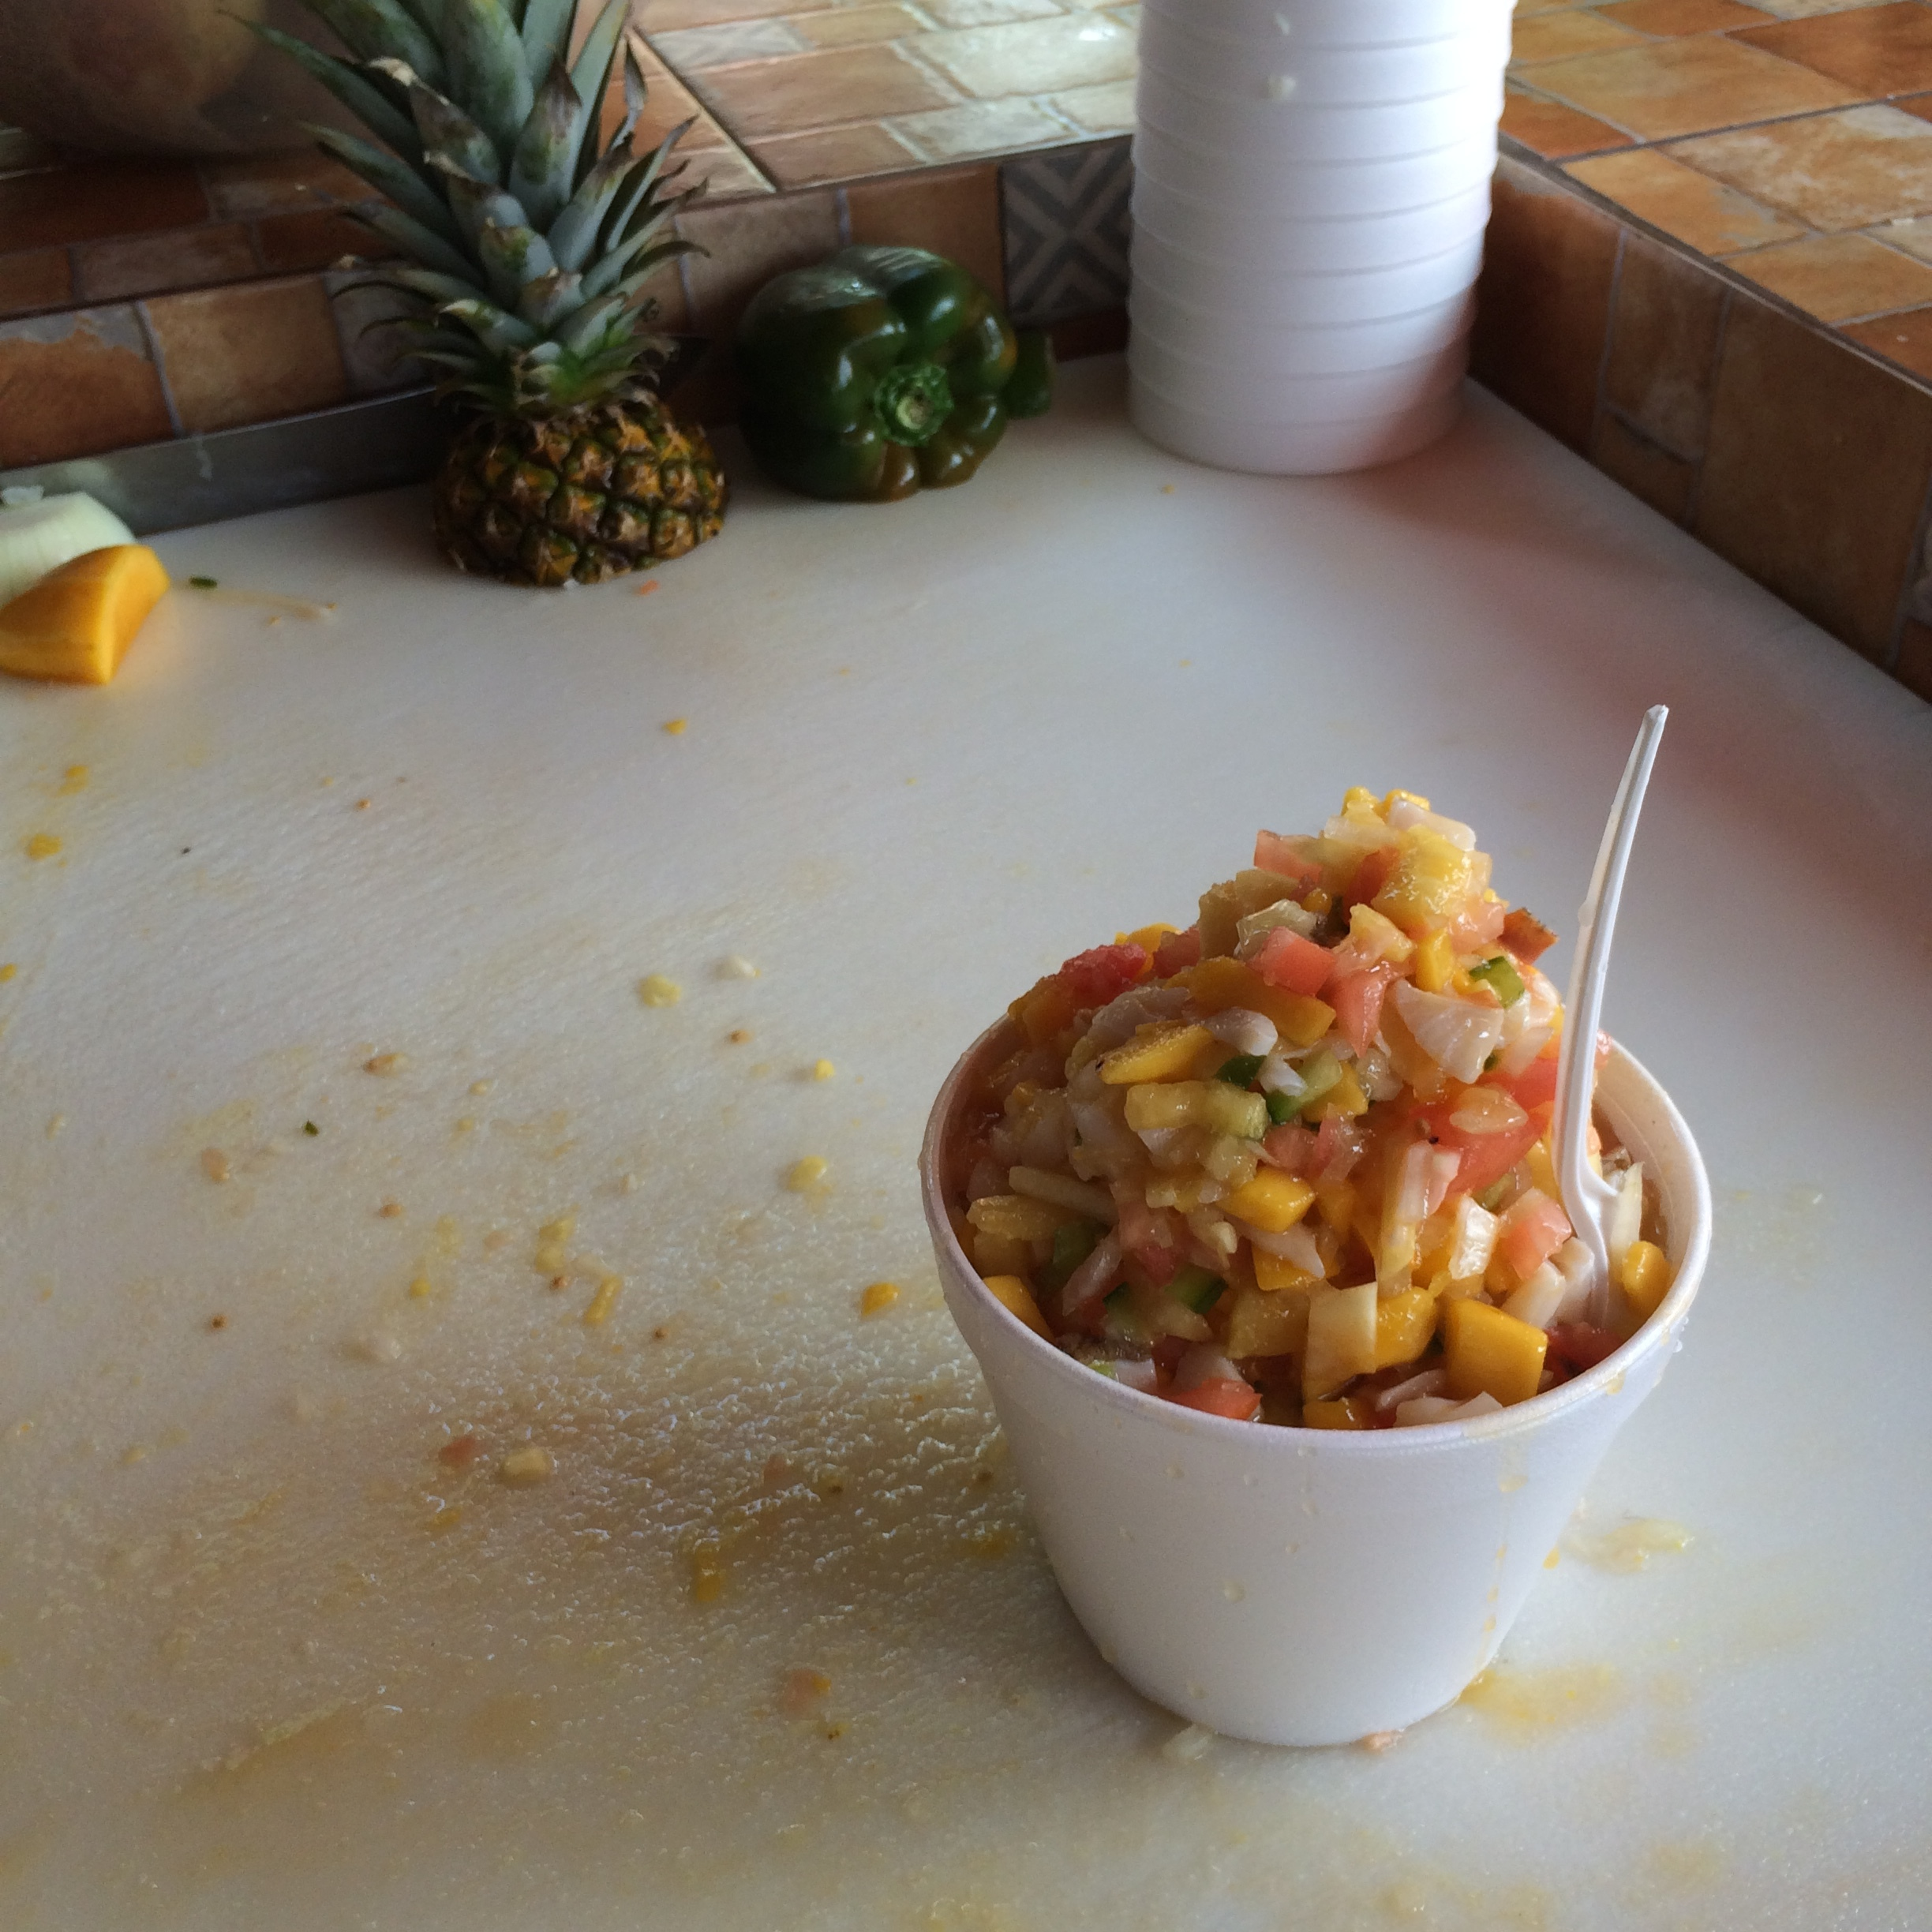 Tropical scorched conch salad with tomatoes, mango, and onions prepared at the Arawak Cay locally known as the Fish Fry.